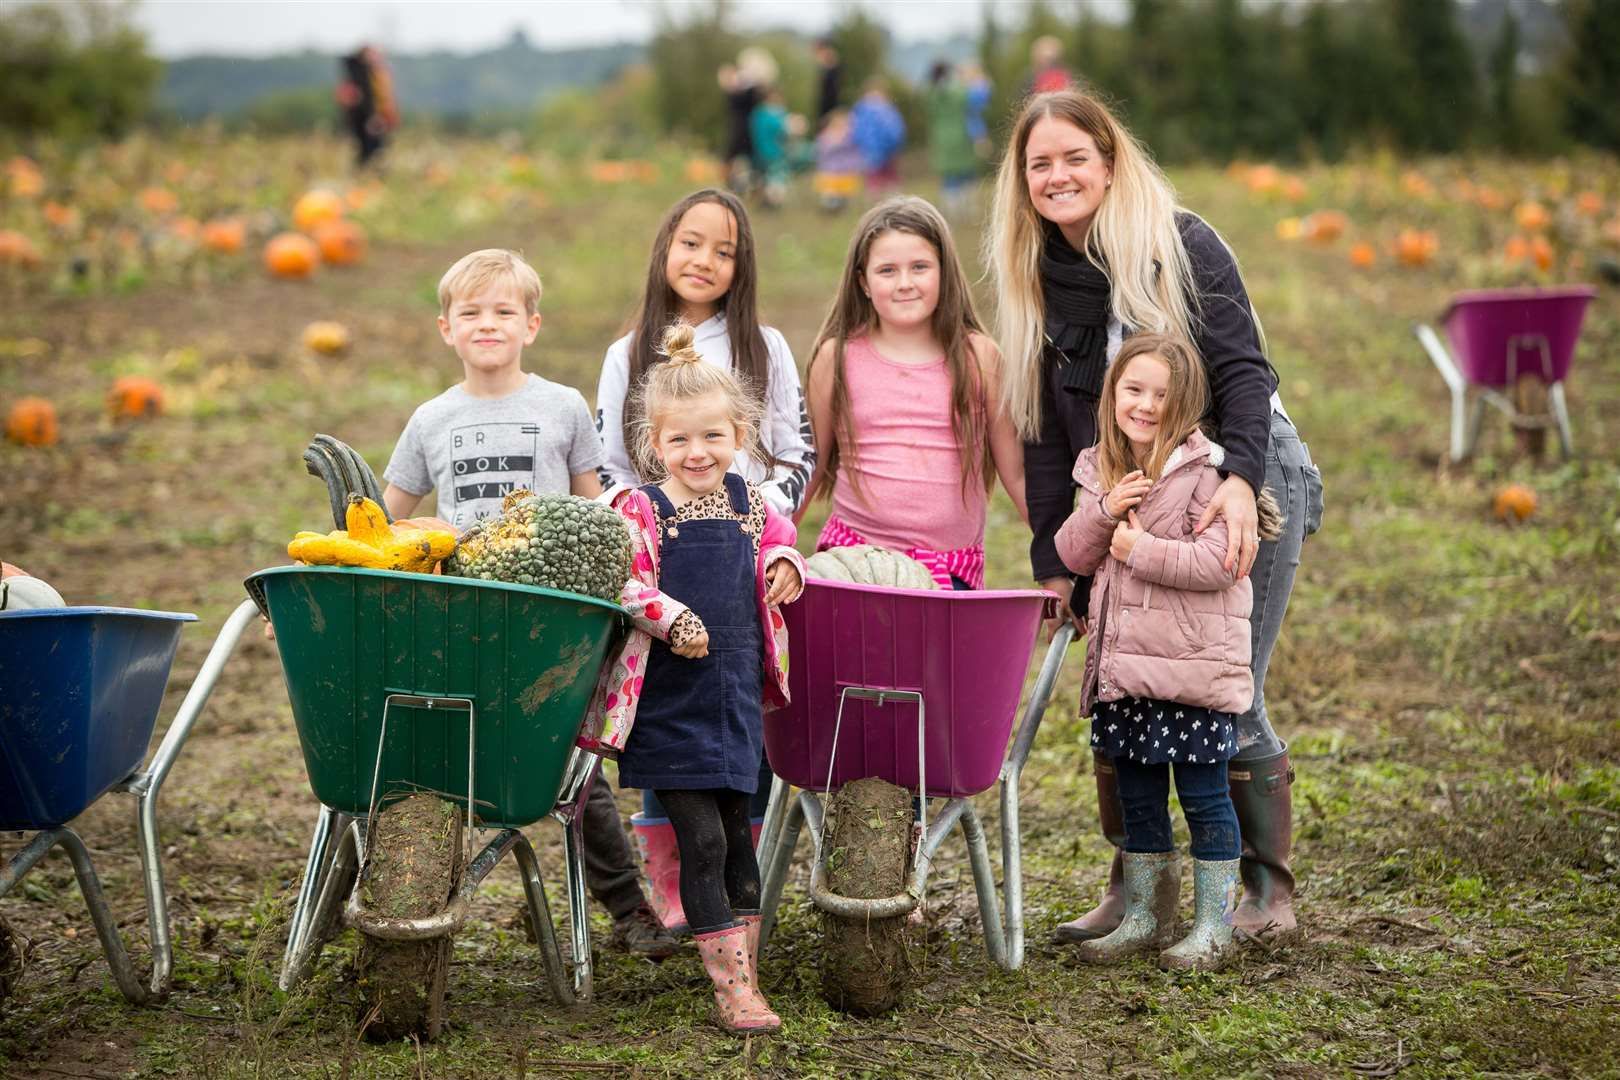 Take the kids to pick a pumpkin this weekend